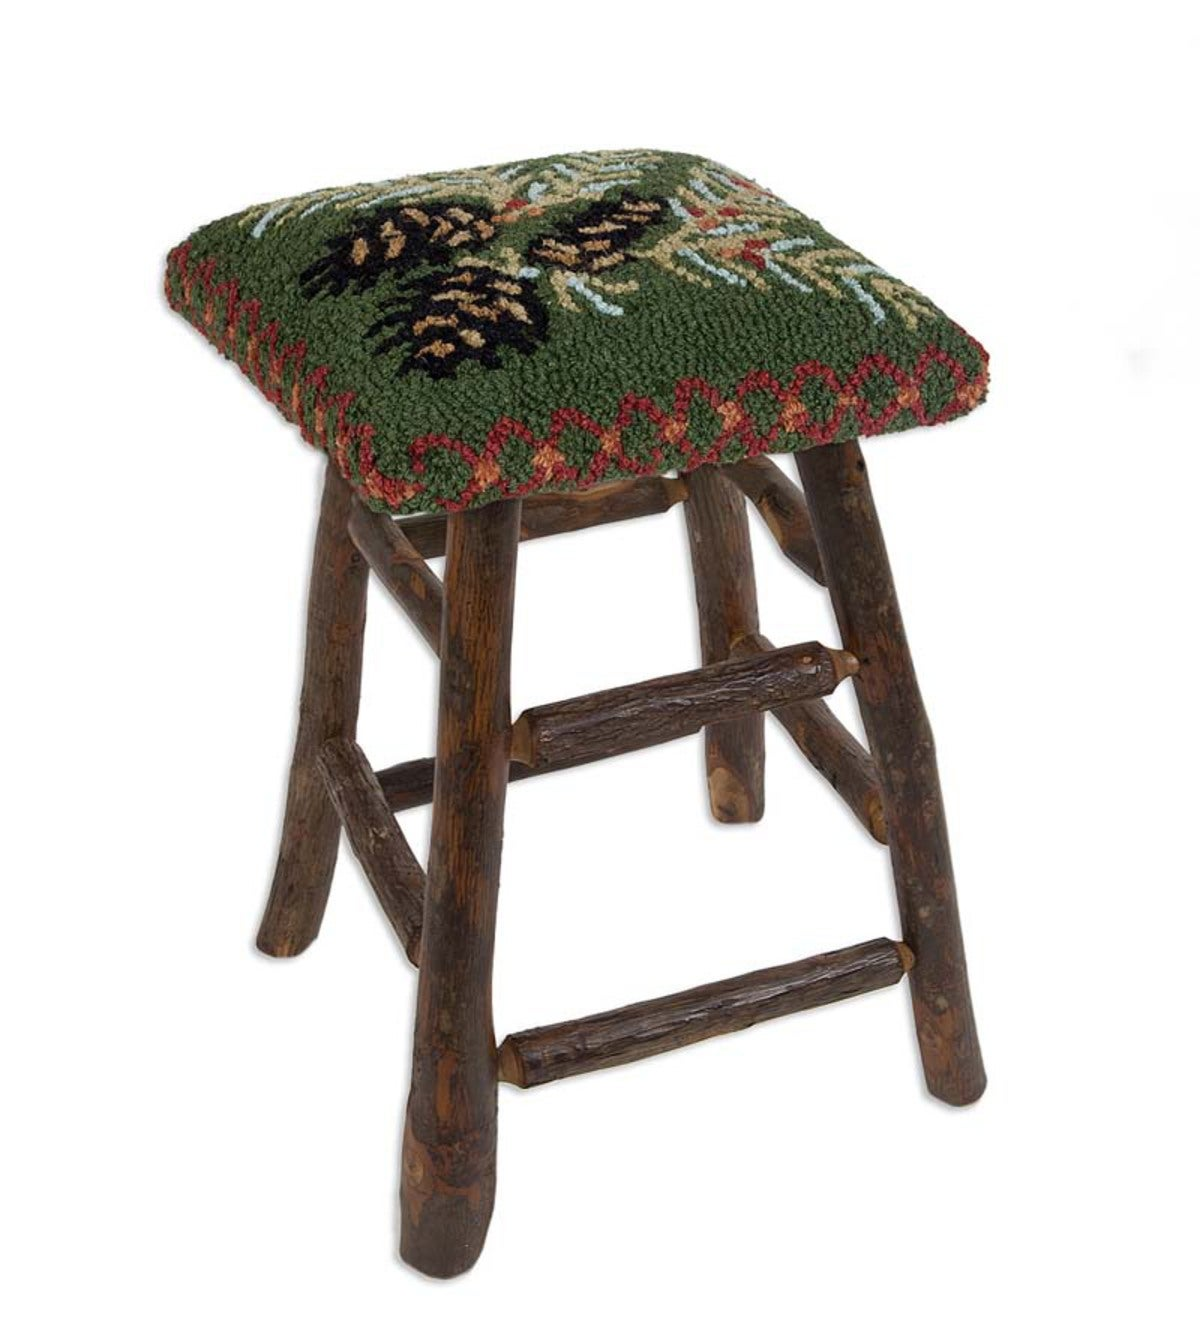 Pine Cone Stool 17 H Eligible For Promotions Plowhearth